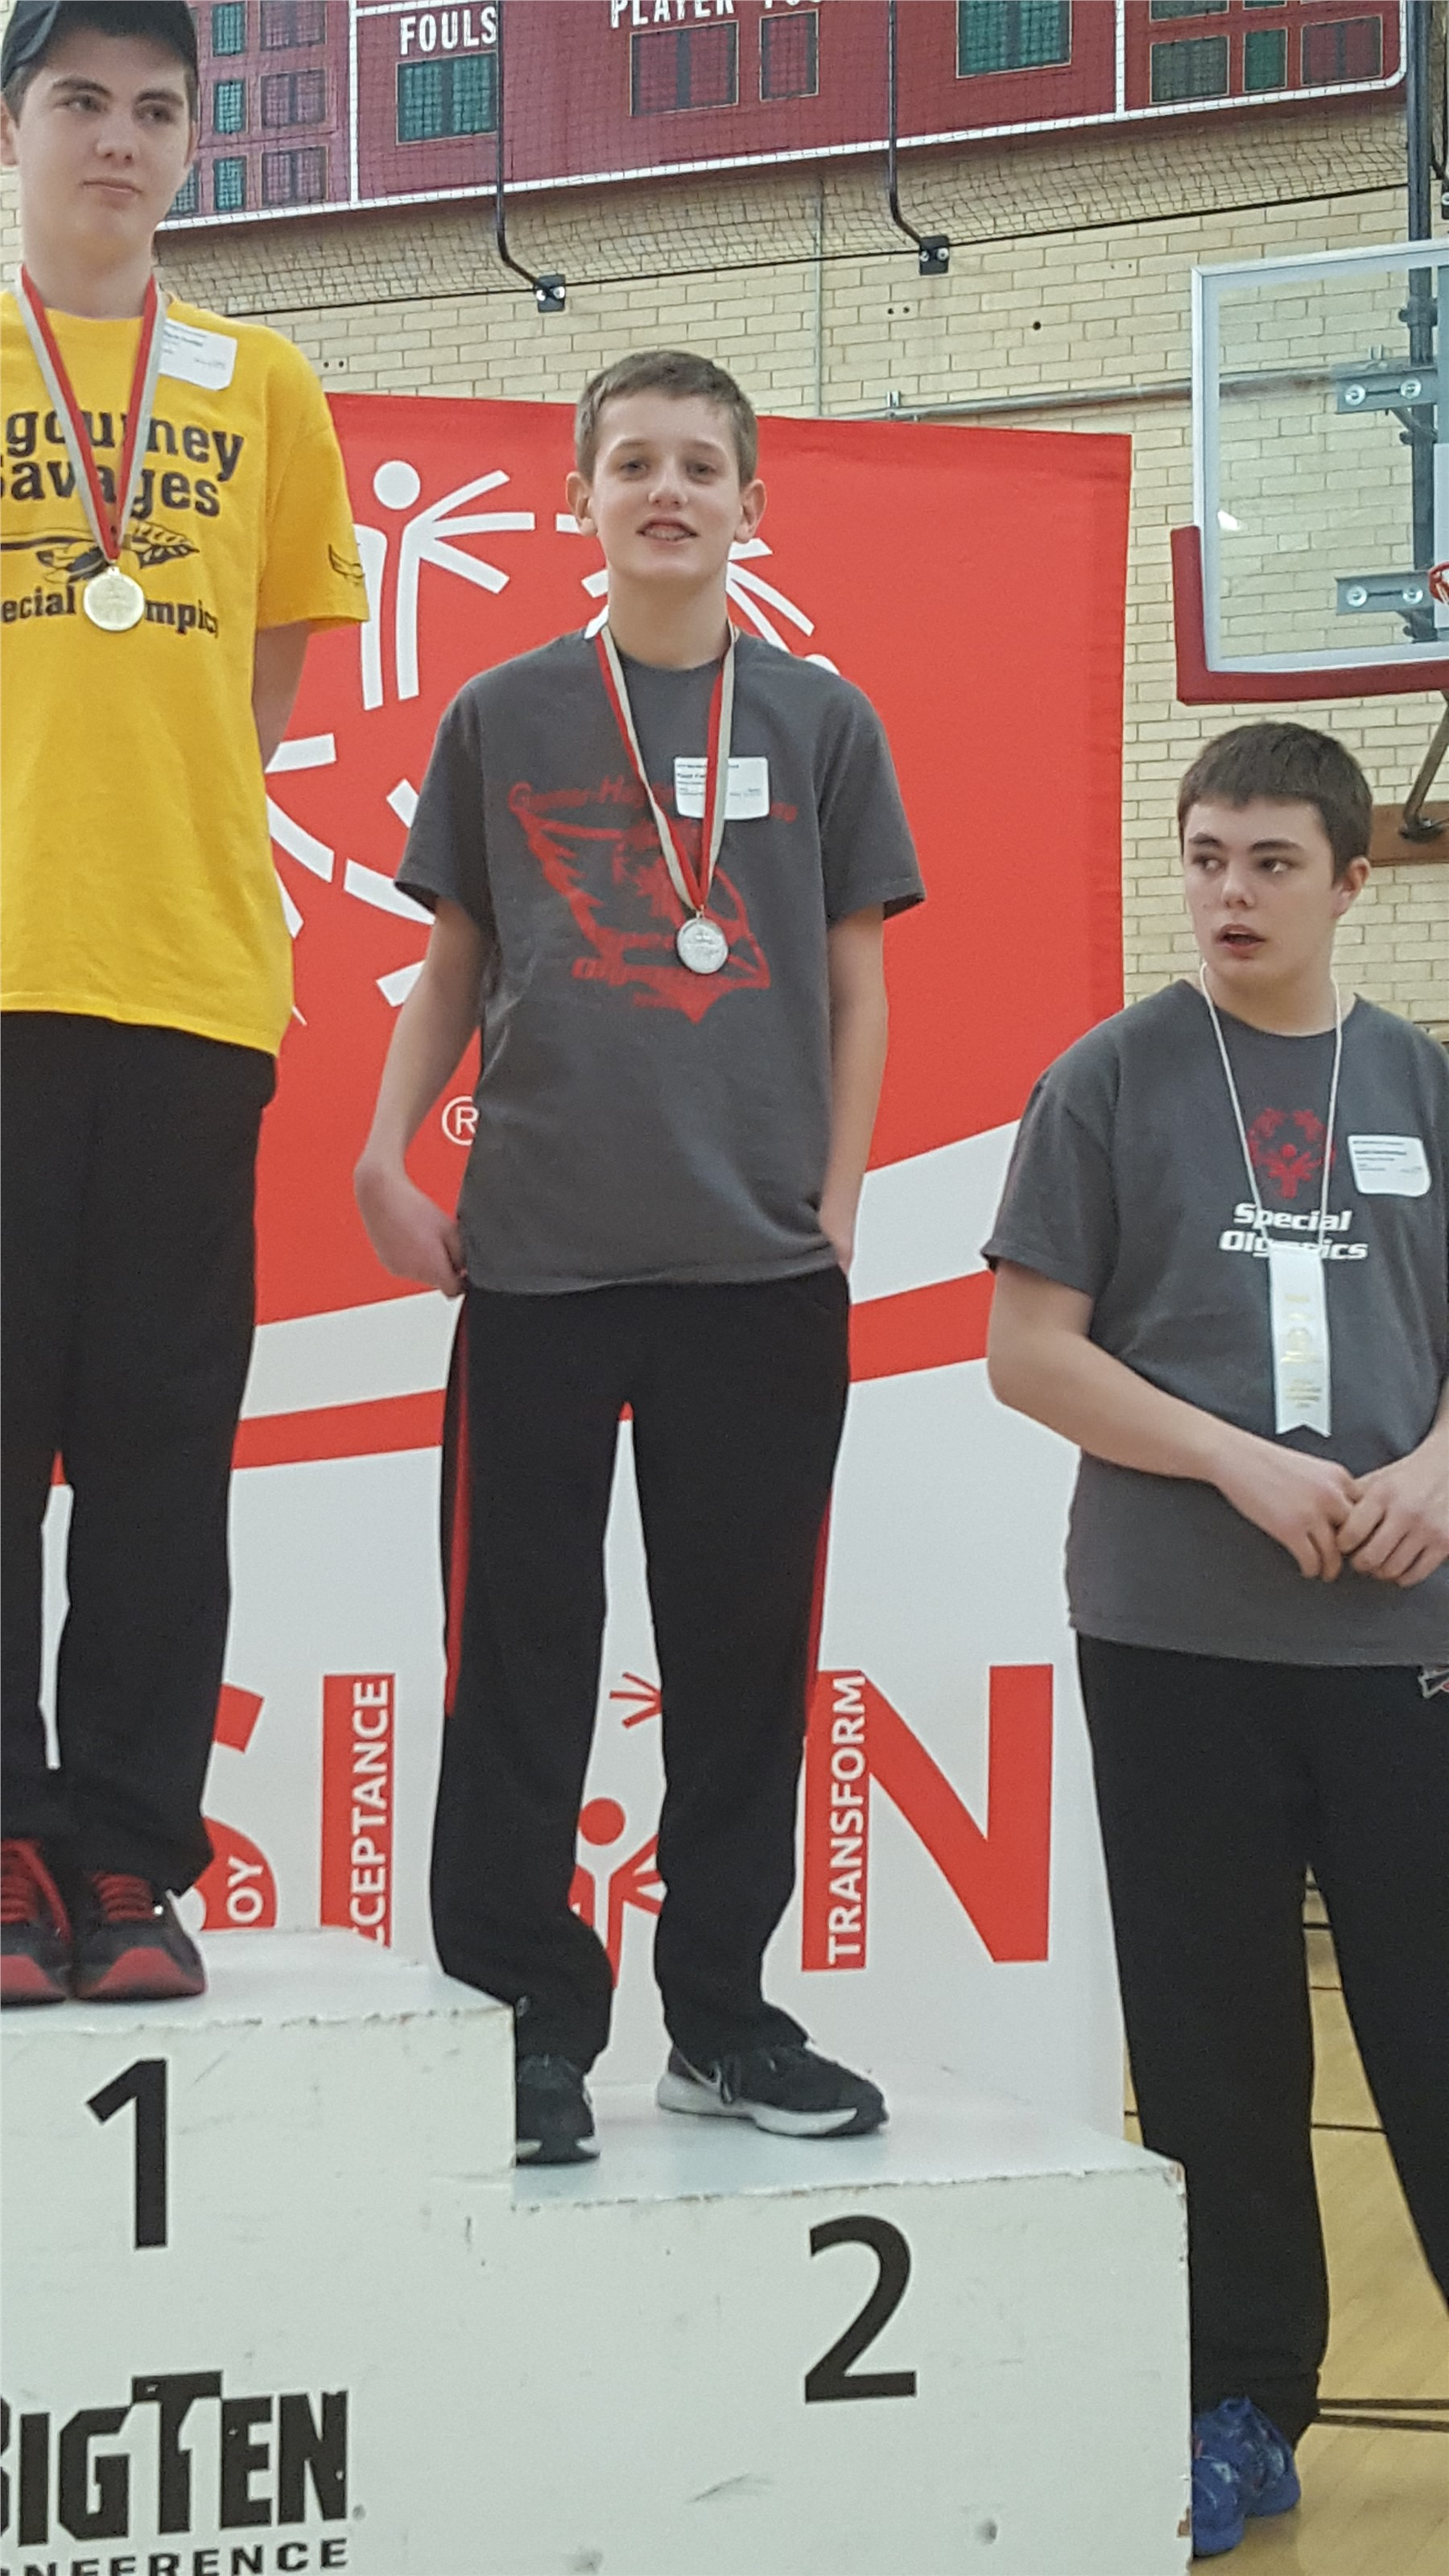 2nd place at State Special Olympics